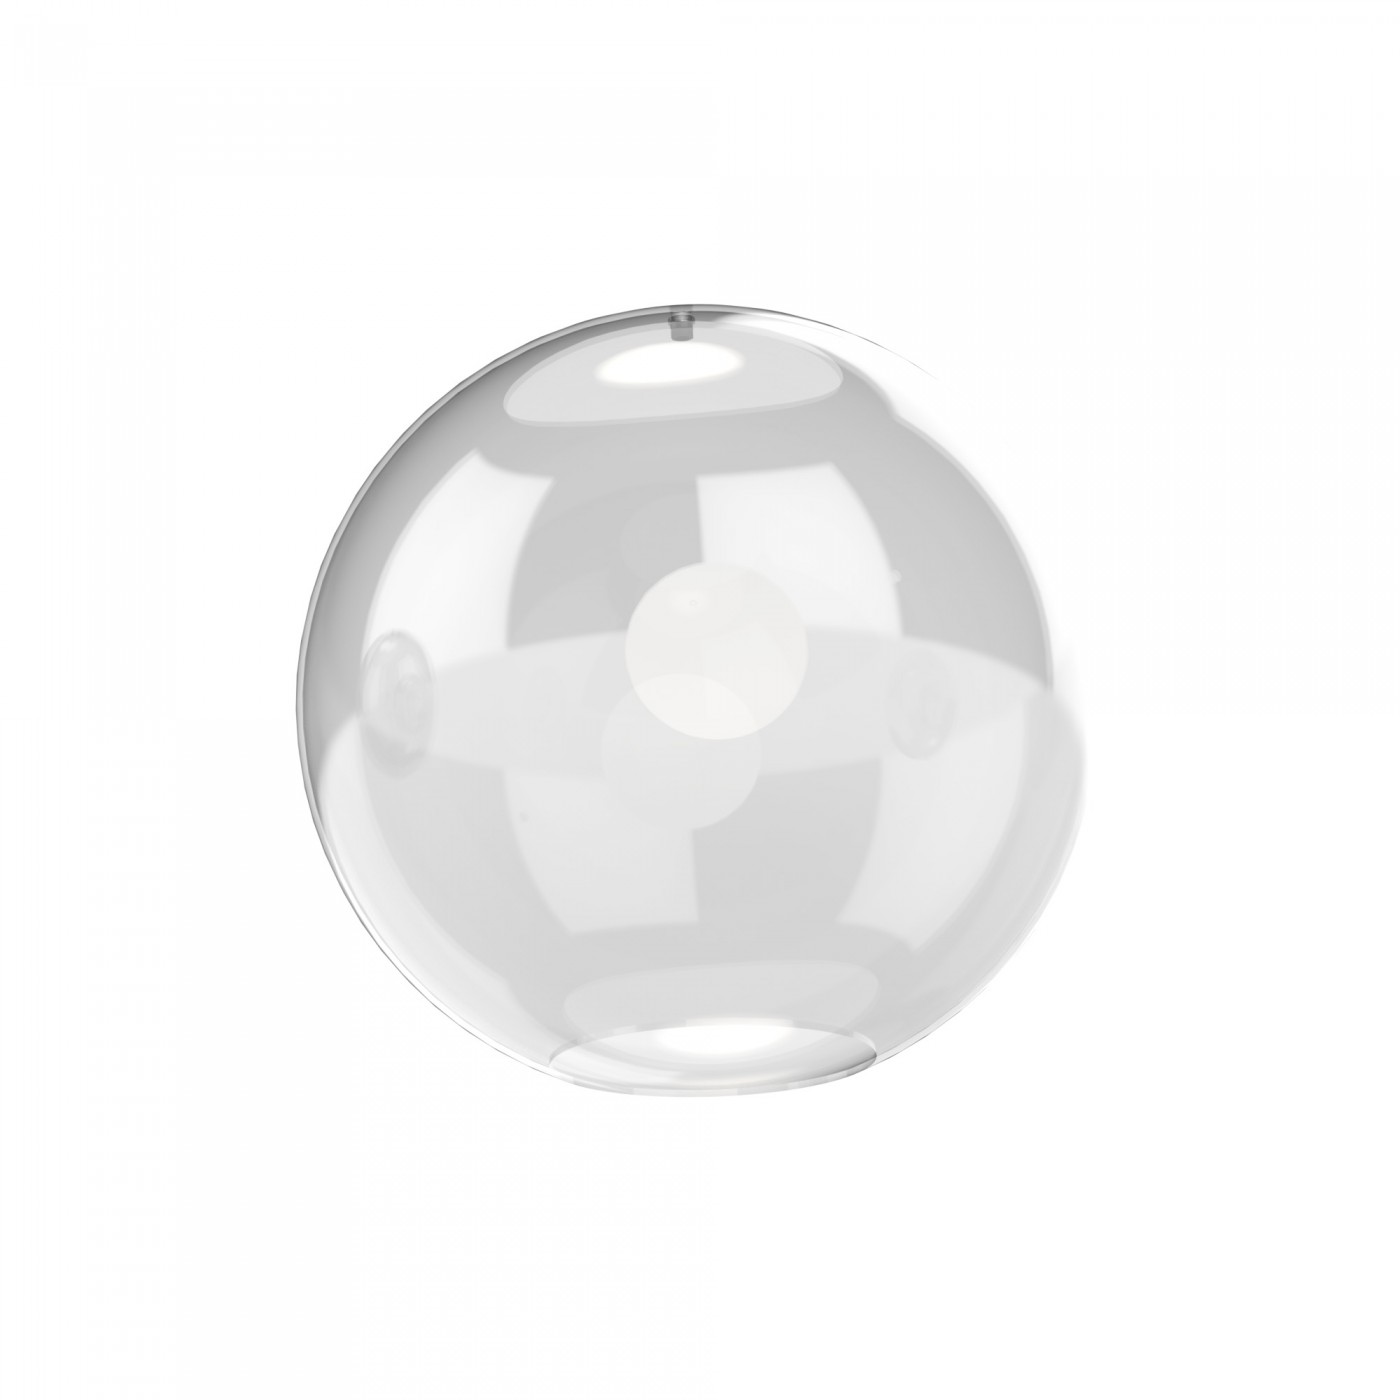 CAMELEON SPHERE XL TR 8527 Nowodvorski Lighting